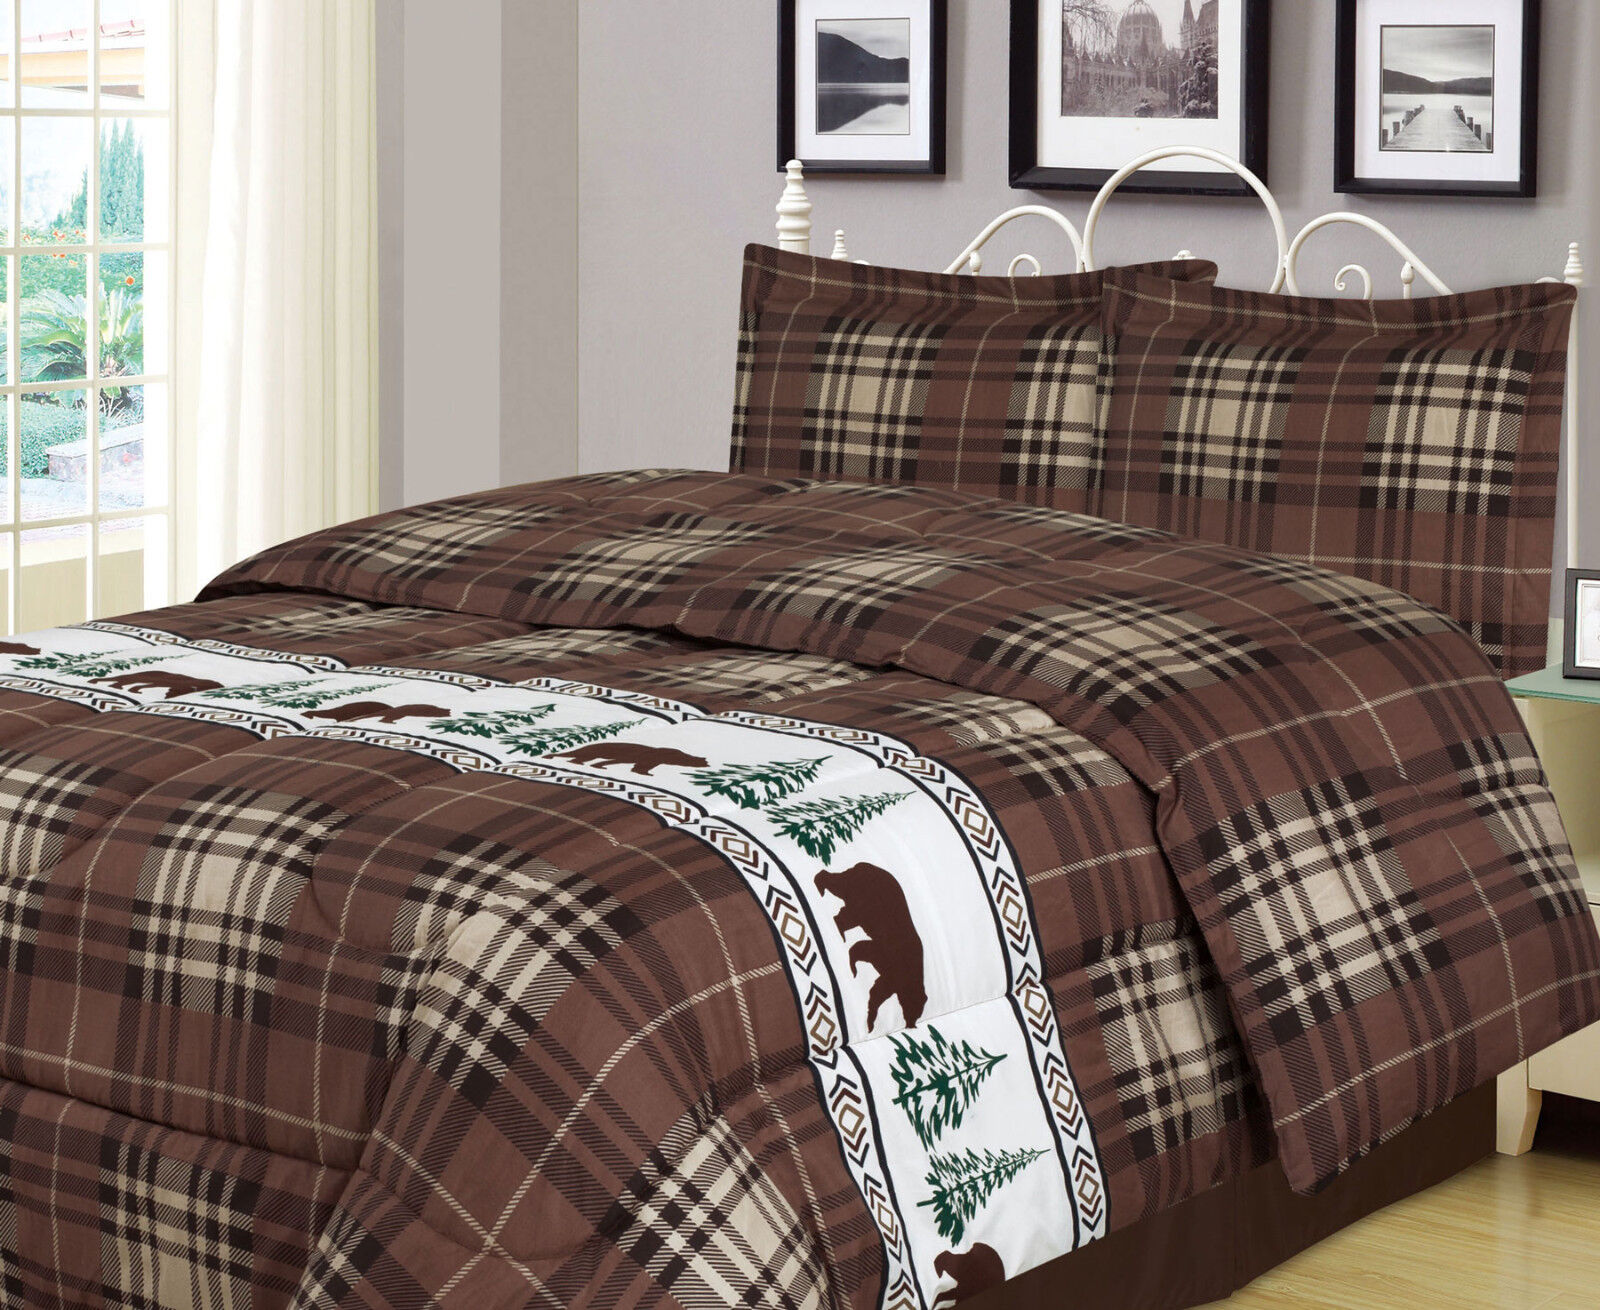 Twin, Full/Queen, or King Plaid Bear Comforter Set Rustic Cabin Lodge Bedding